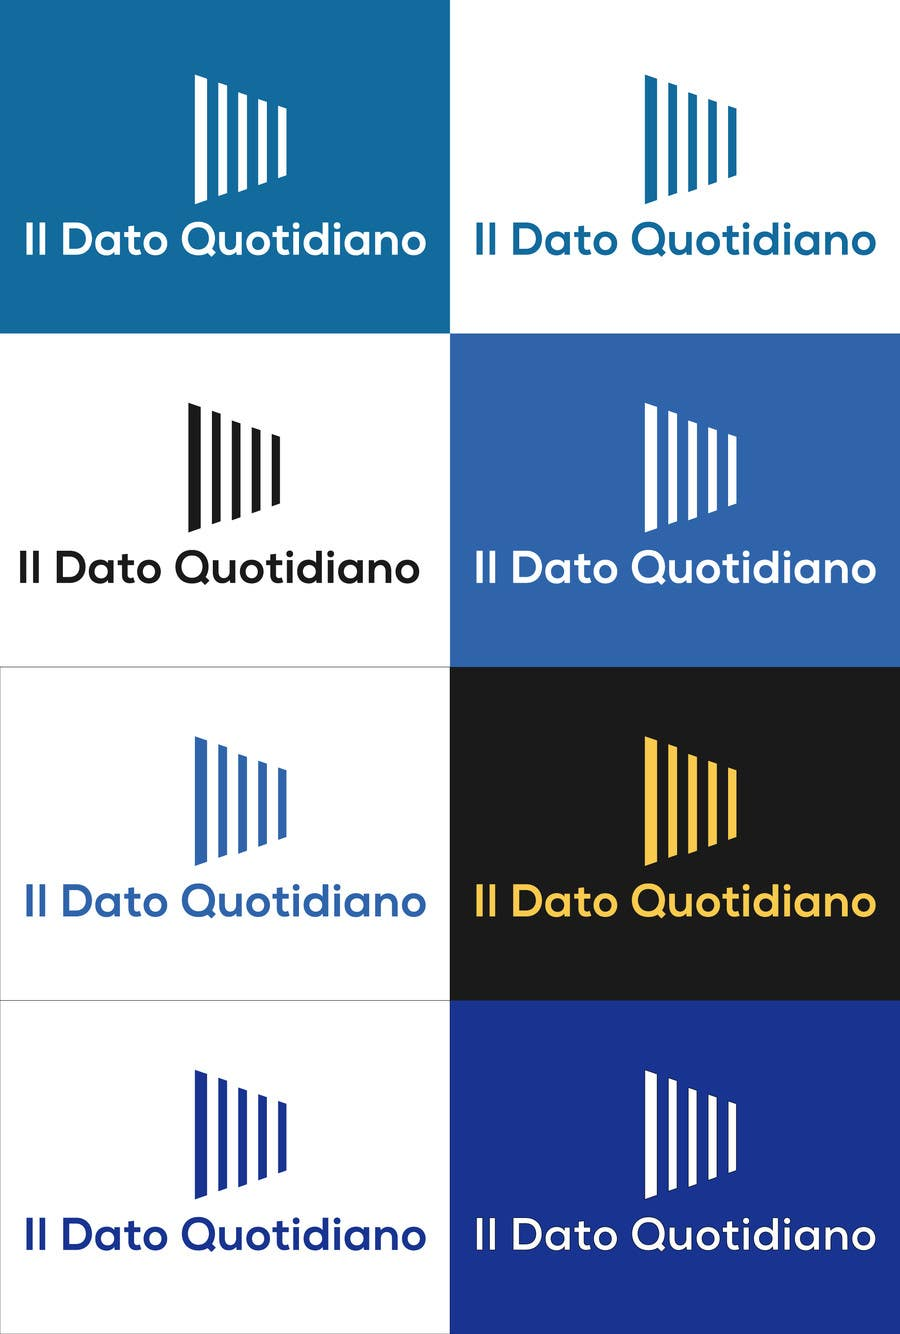 Konkurrenceindlæg #30 for Data Journalism site logo - Il Dato Quotidiano